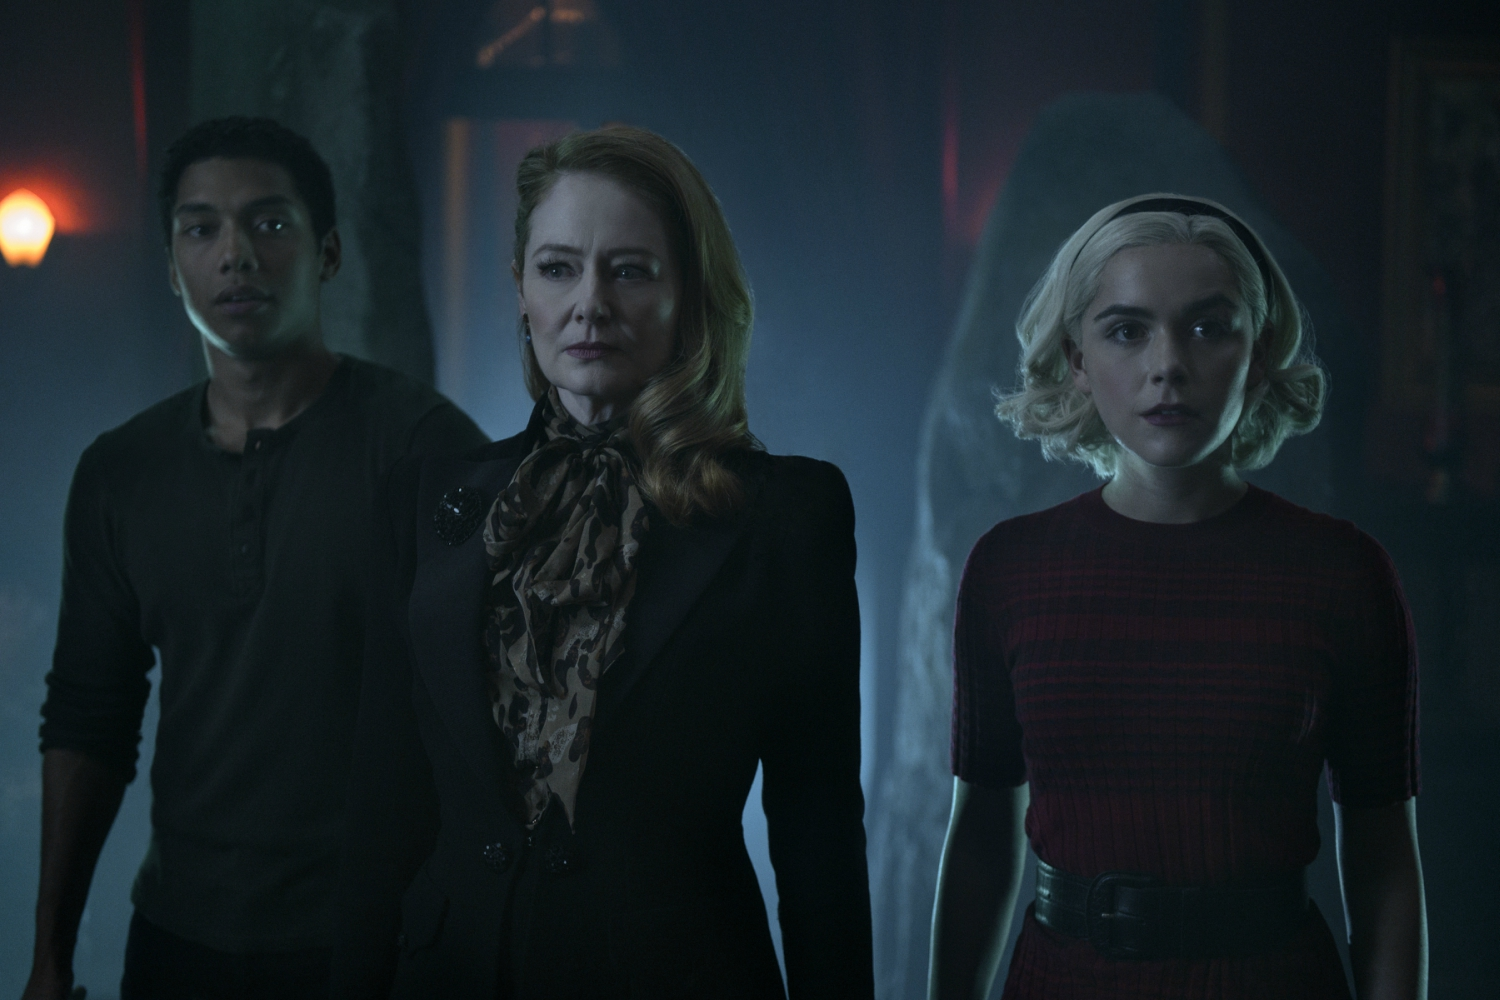 Why Chilling Adventures Of Sabrina got canceled by Netflix?